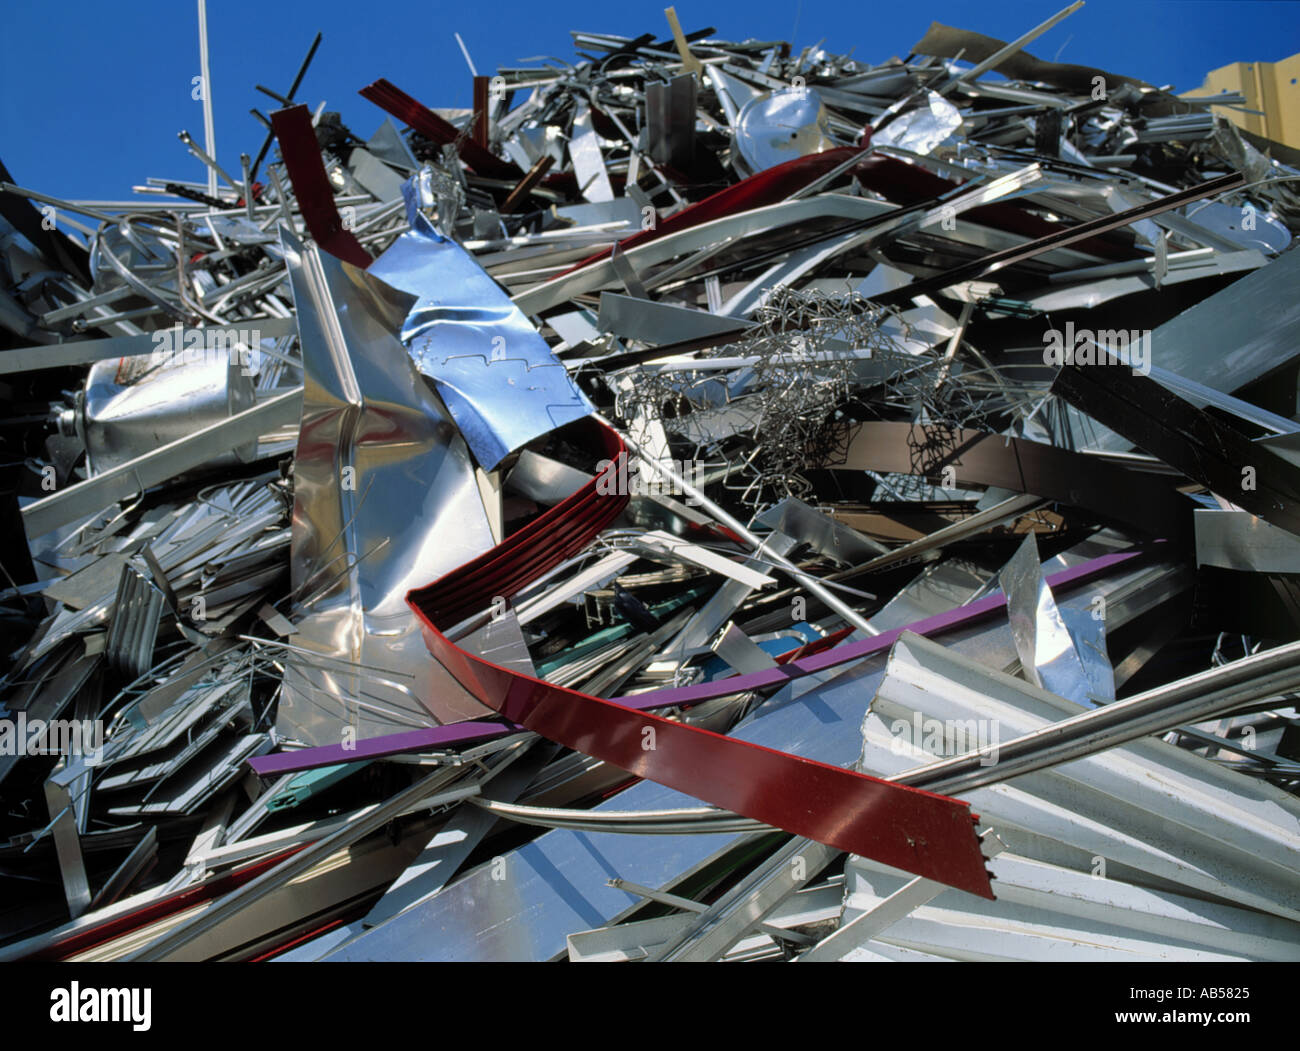 aluminium at scrap yard Stock Photo